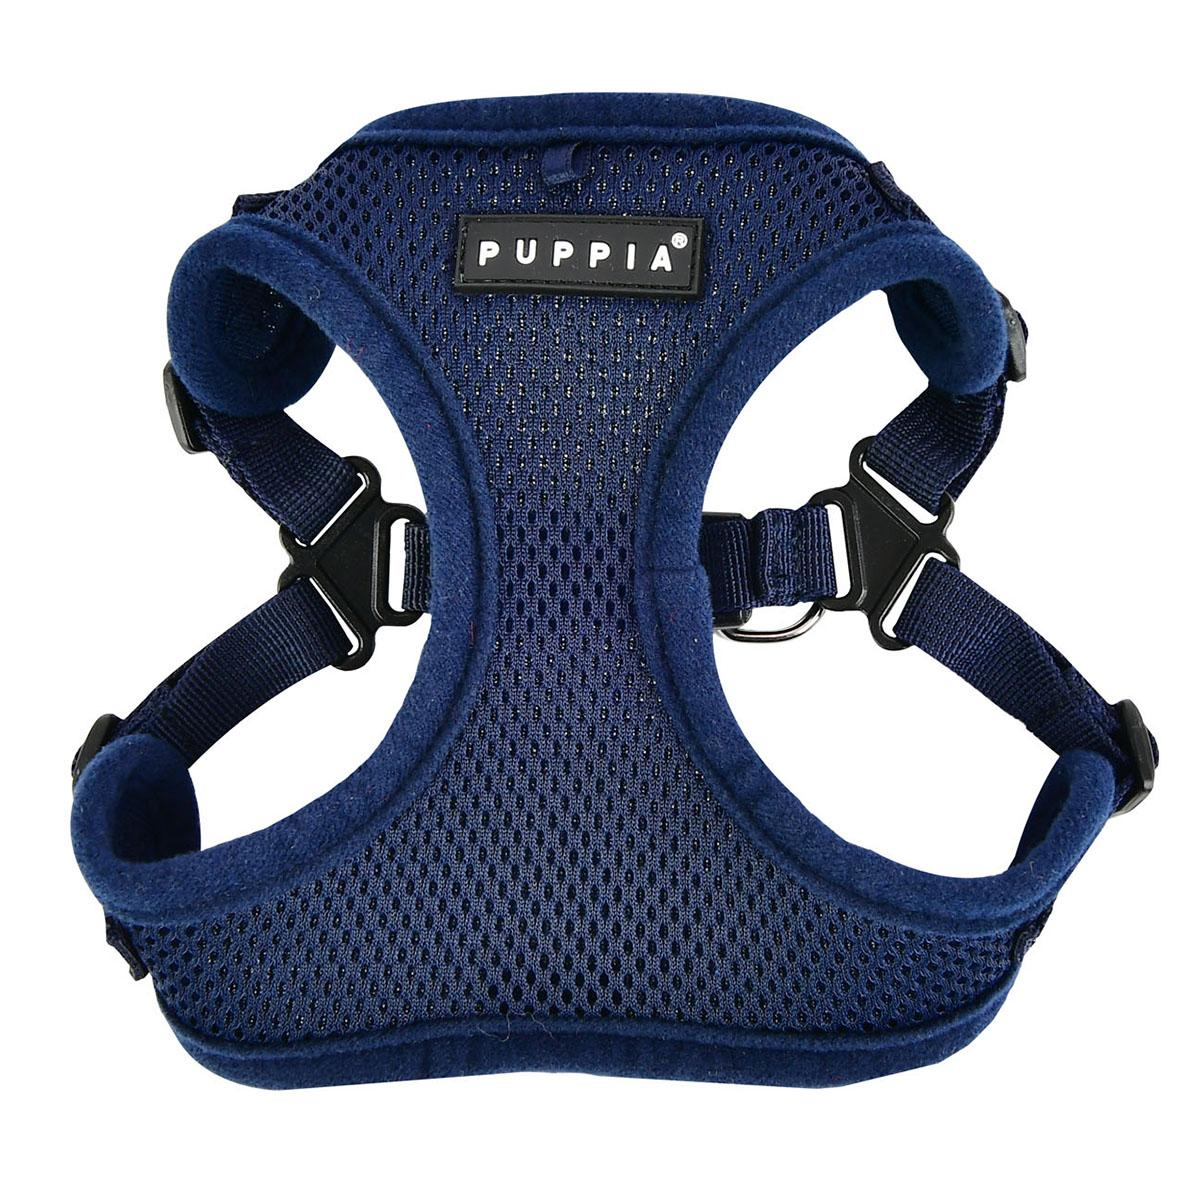 Soft Adjustable Step-In Dog Harness by Puppia - Navy